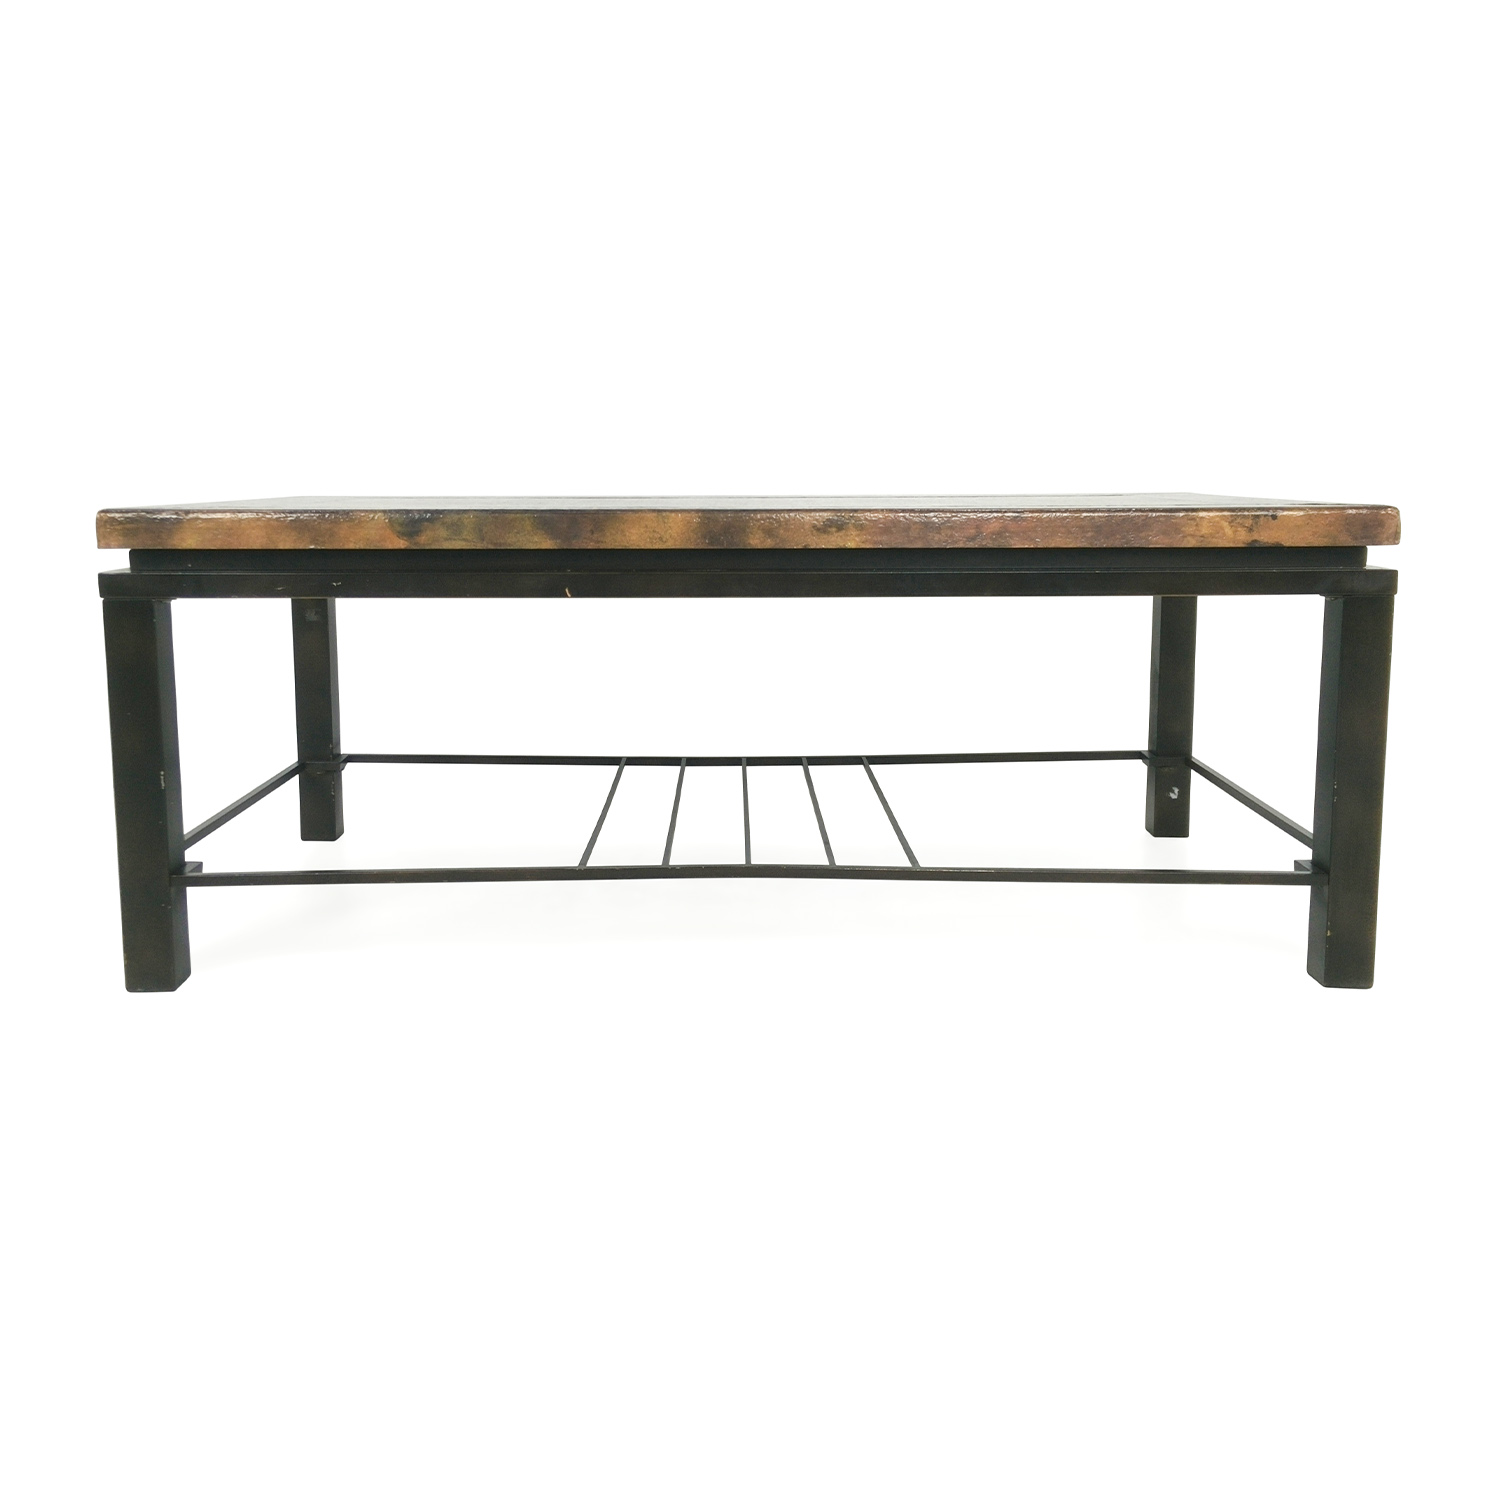 71 off unknown brand bronze coffee table tables Tables for coffee shop